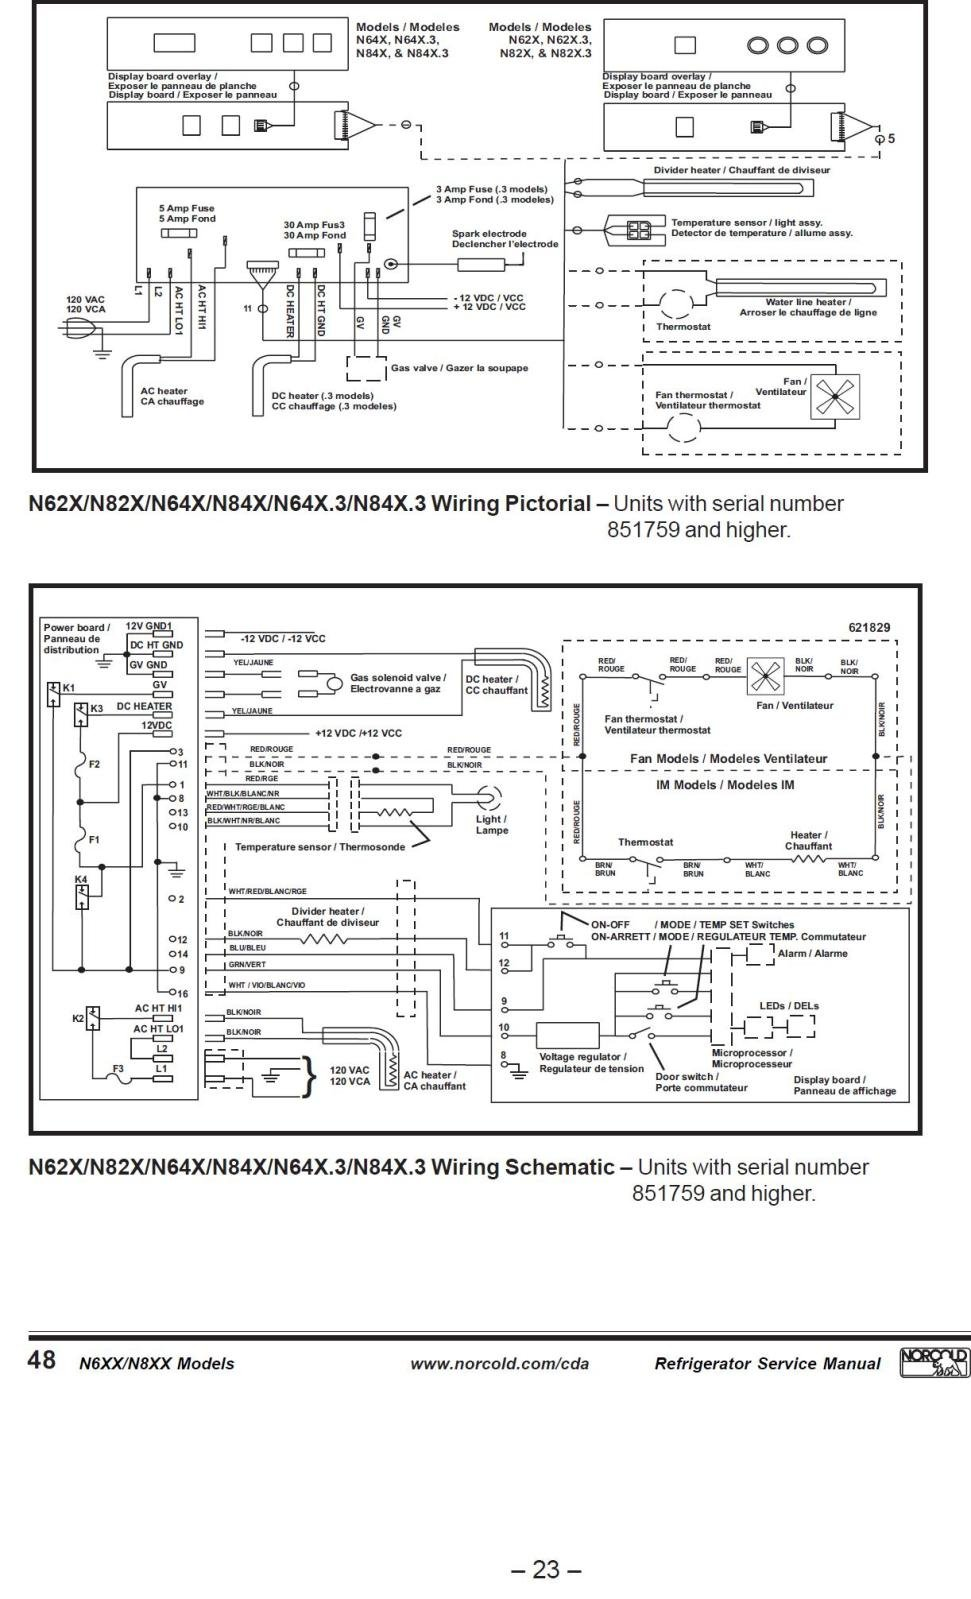 2i0r6s7 Norcold Power Board Wiring Diagram on n811rt troubleshooting, model 1200lrim, model n611rt, rv refrigerator model n811vfrw6, 61655622 power supply, 1200lrim power board,